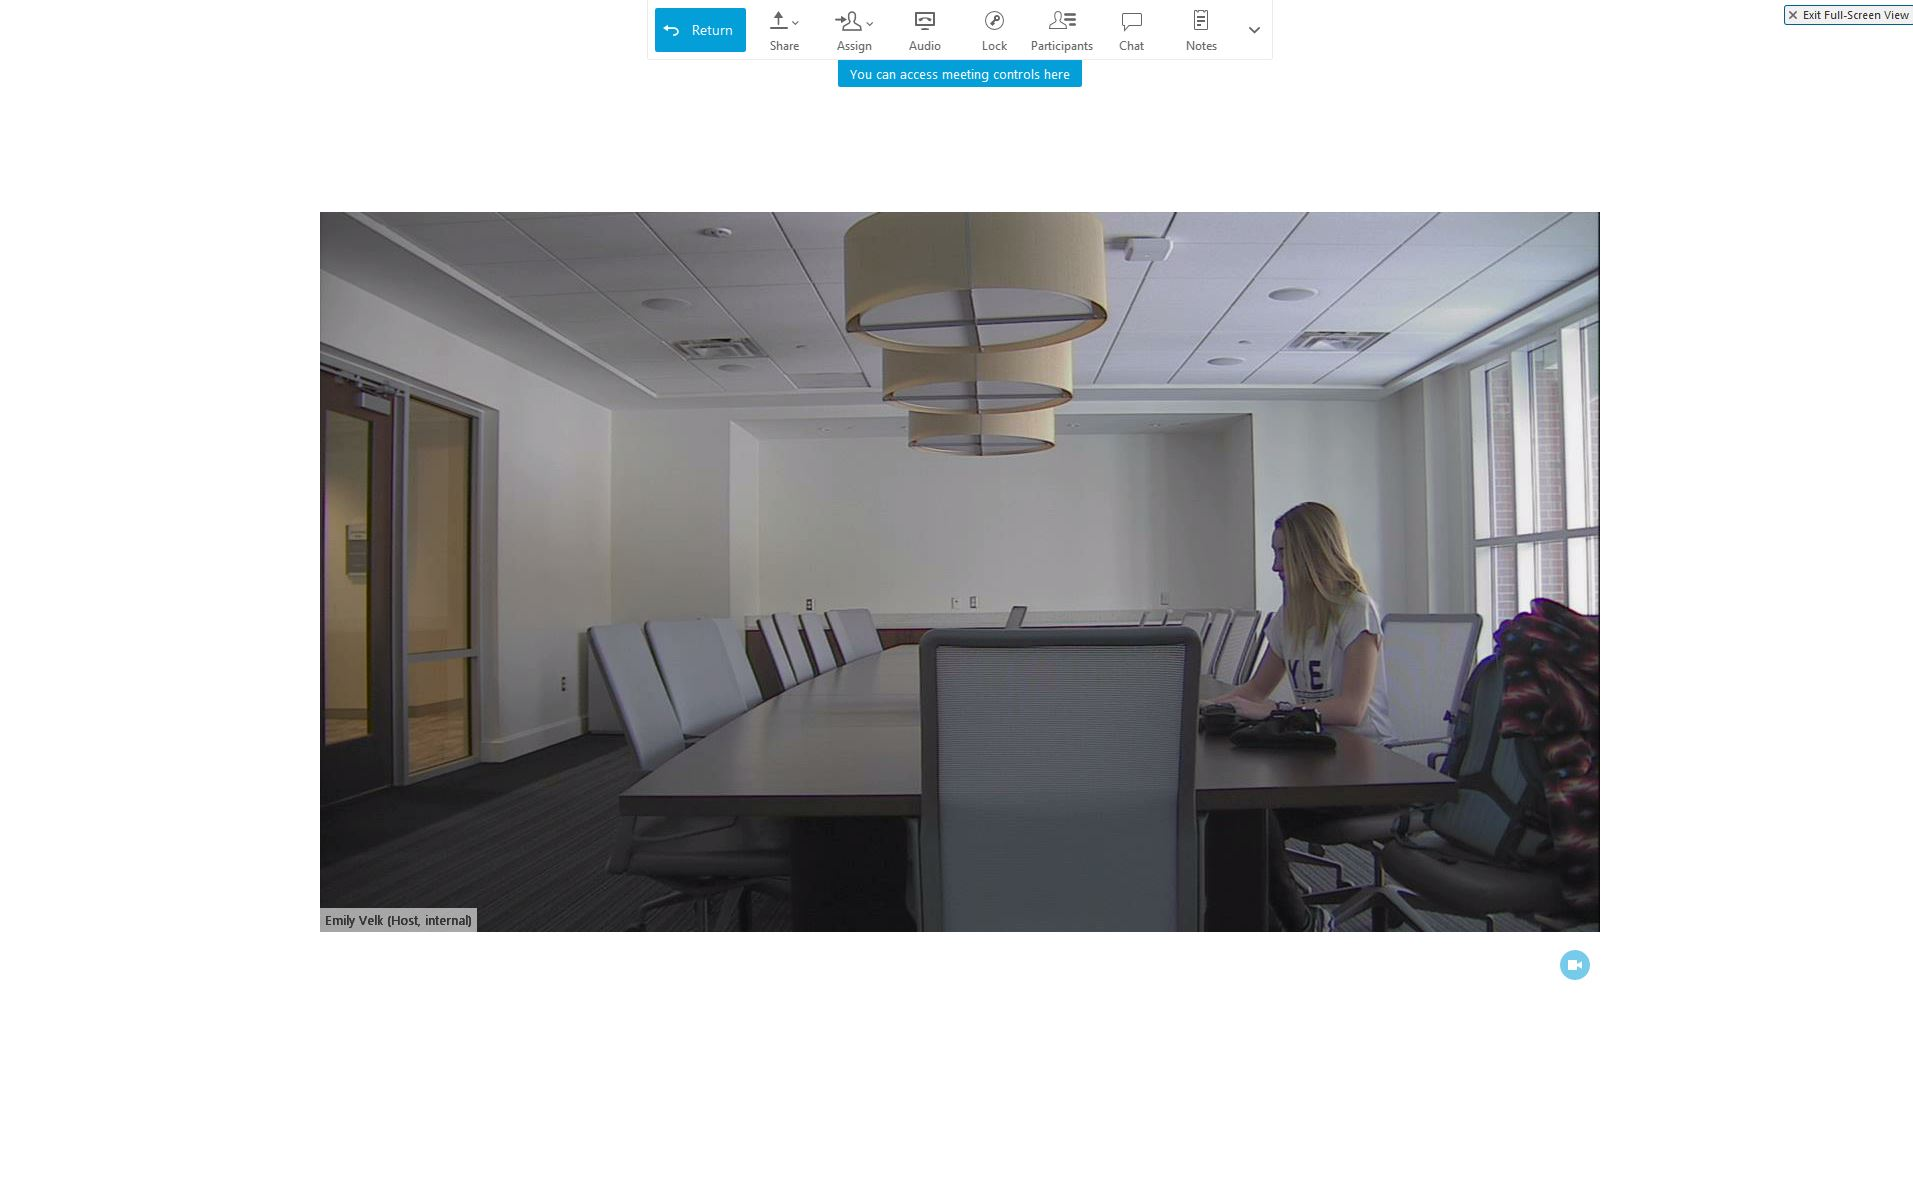 A photo showing the video window expanded